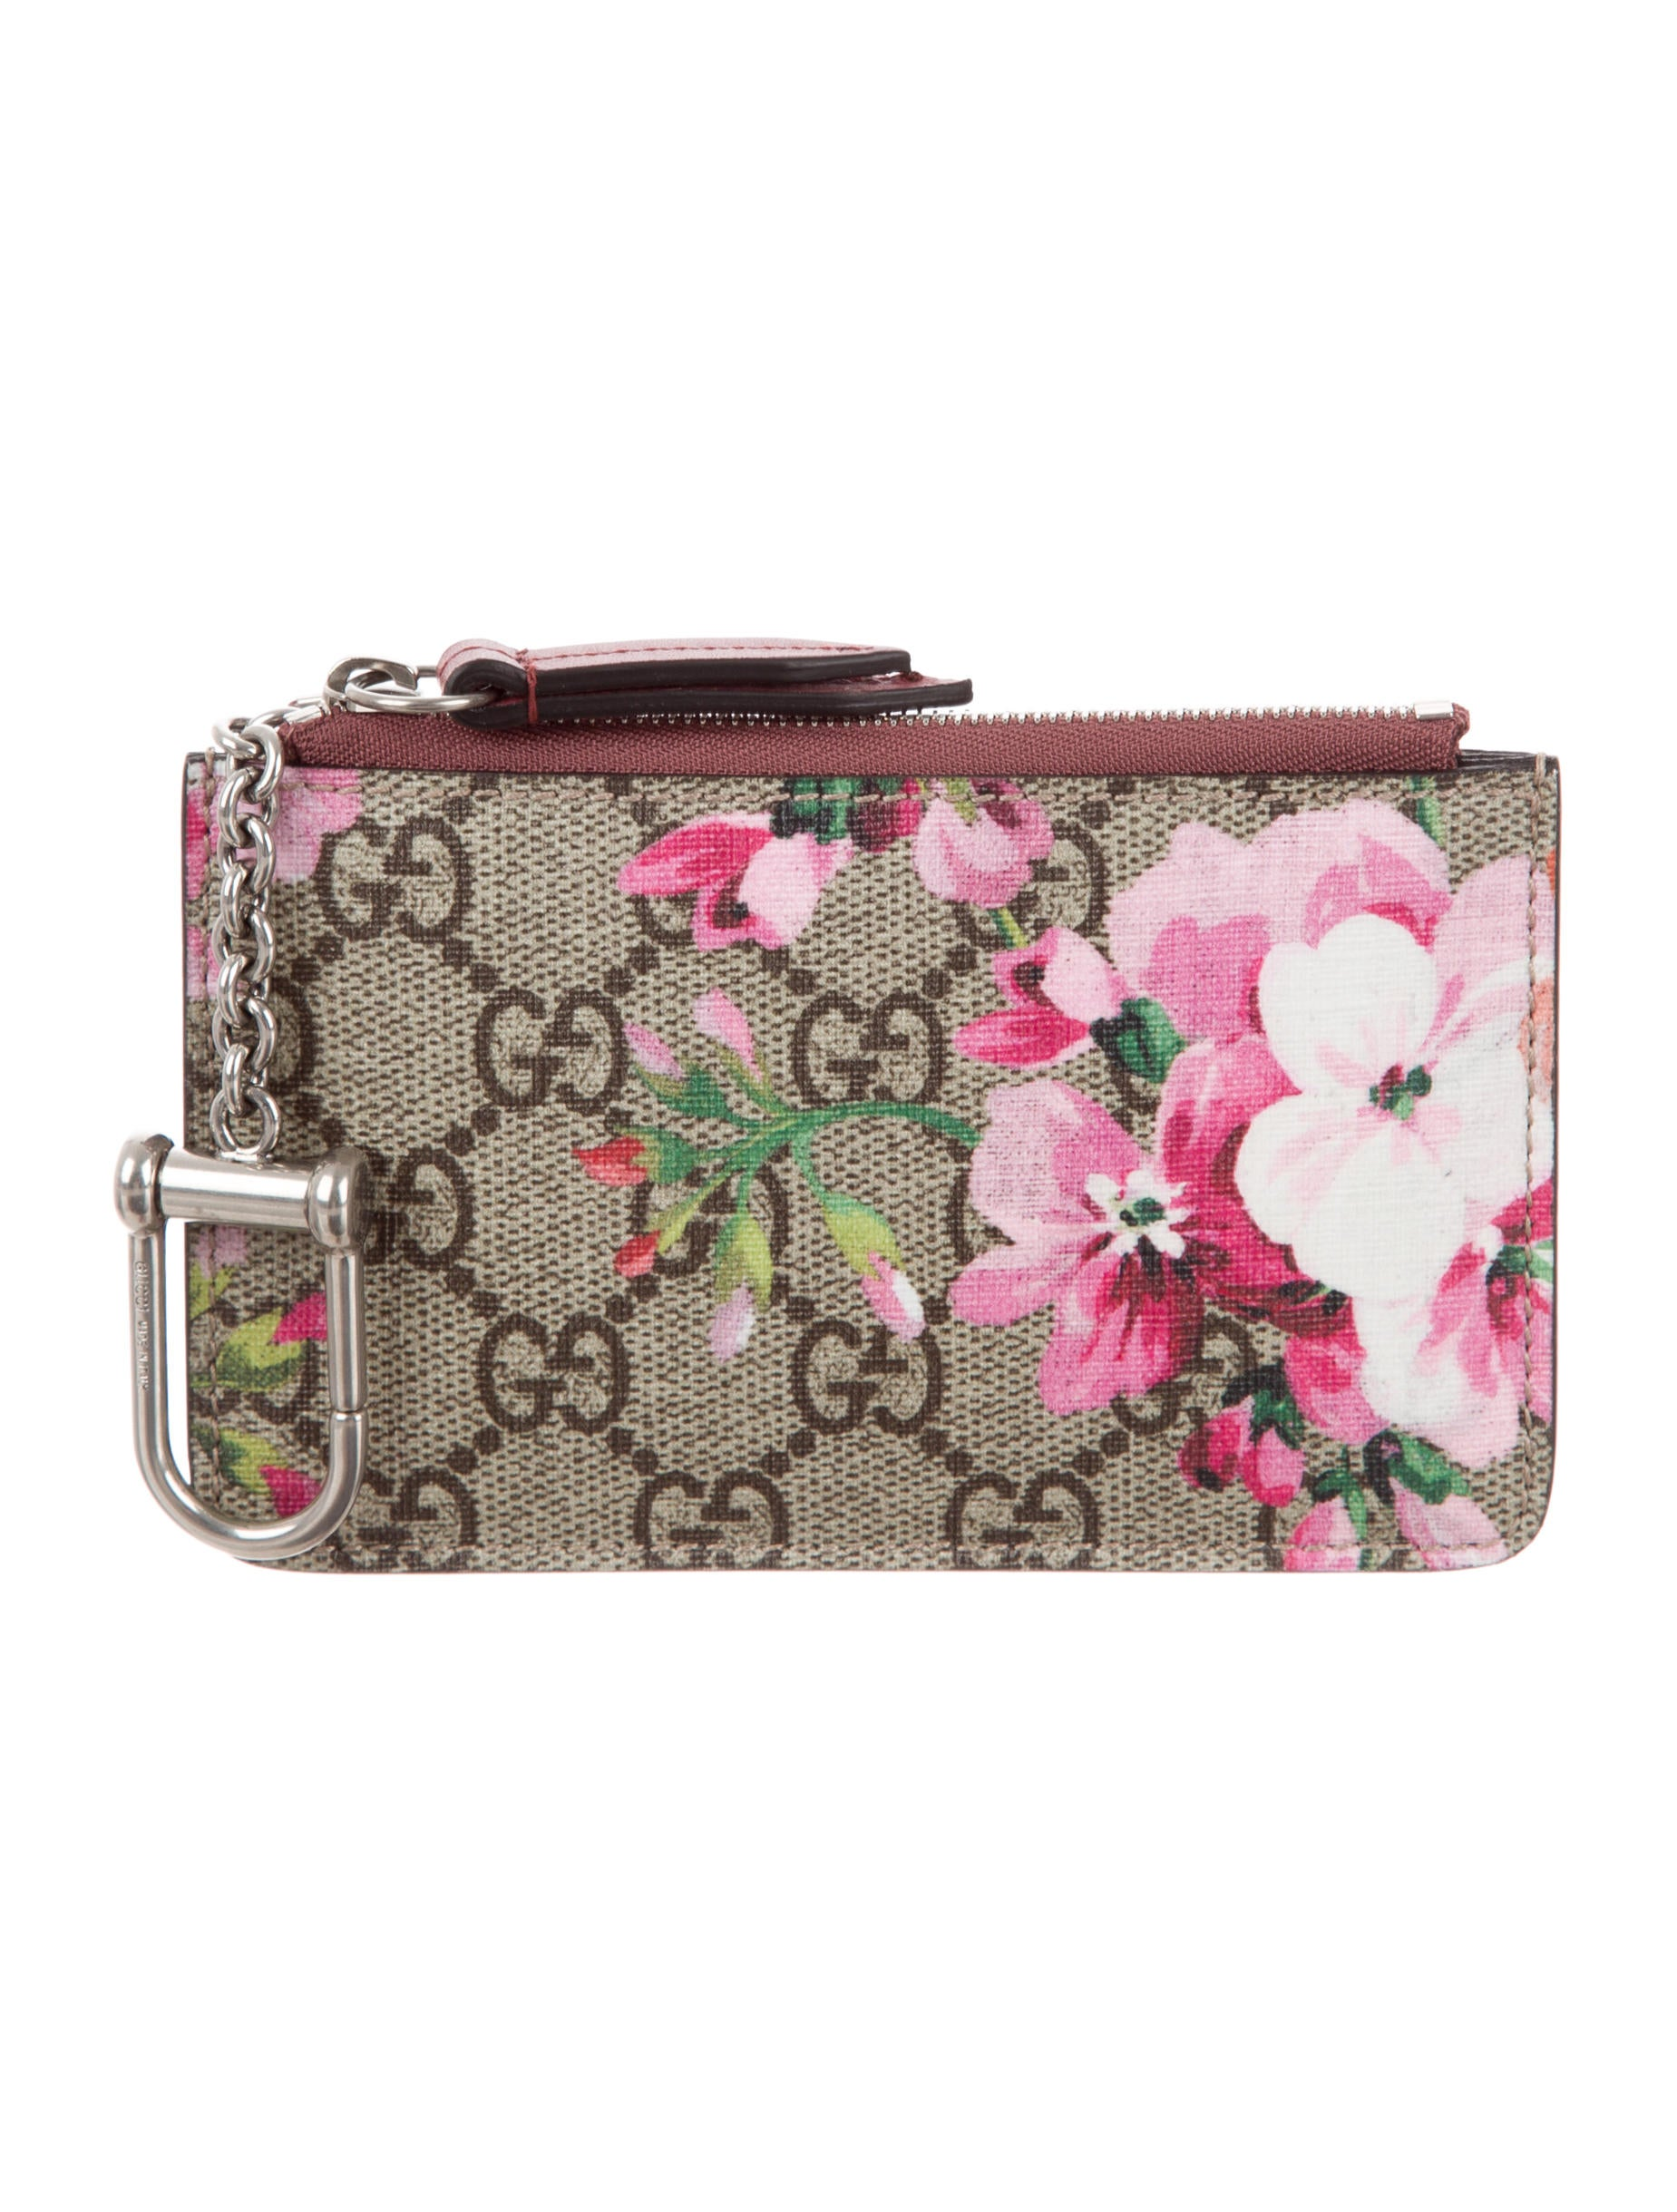 4f97156f71c Gucci GG Blooms Key Pouch - Accessories - GUC166093